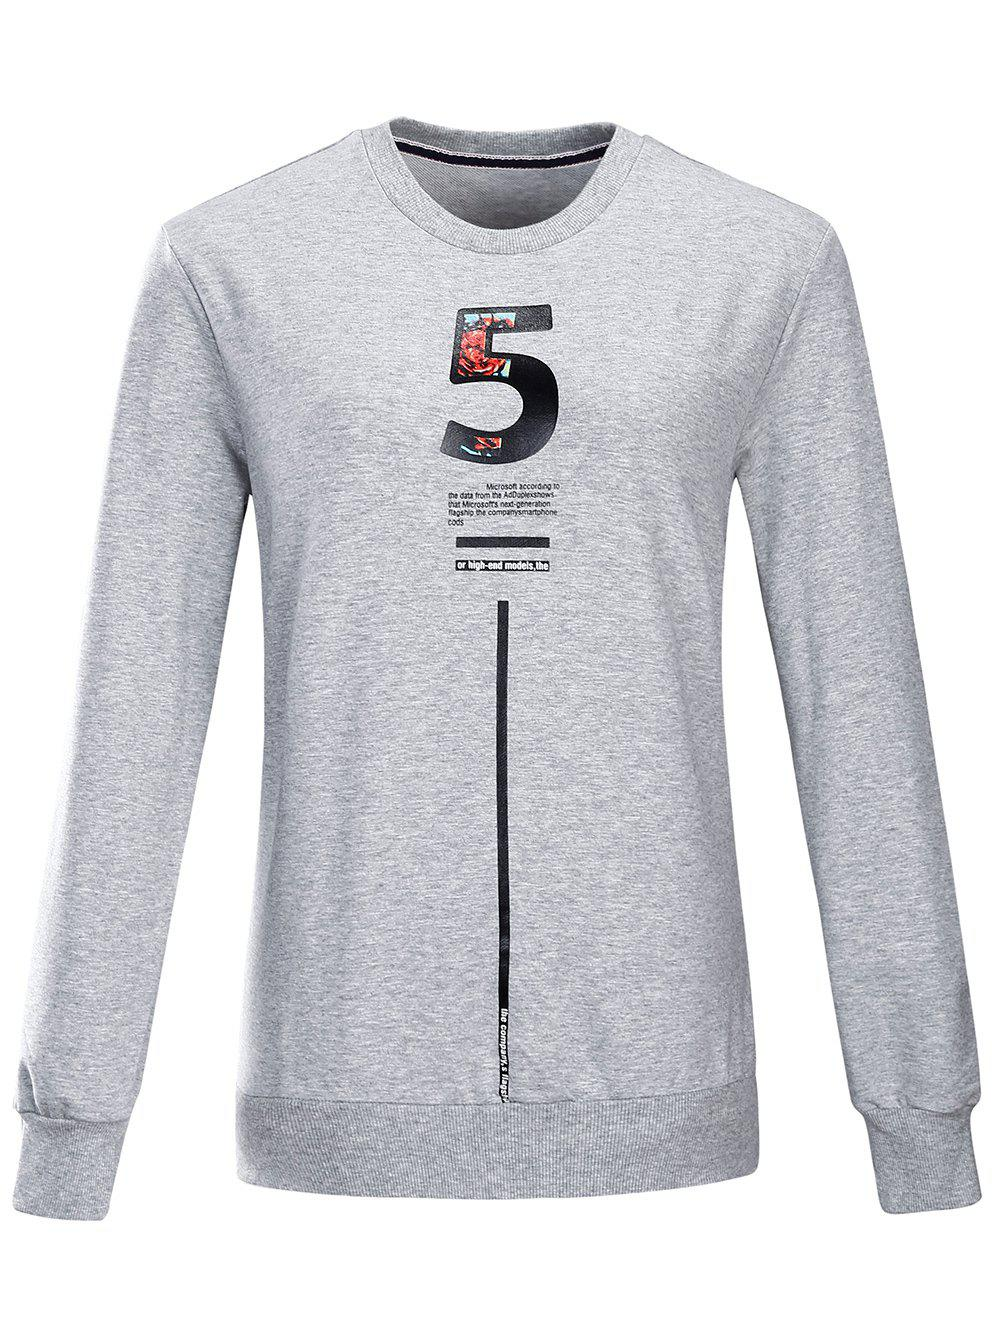 2018 Graphic Crew Neck Sweatshirt Gris L In Sweat Shirts Sweats à